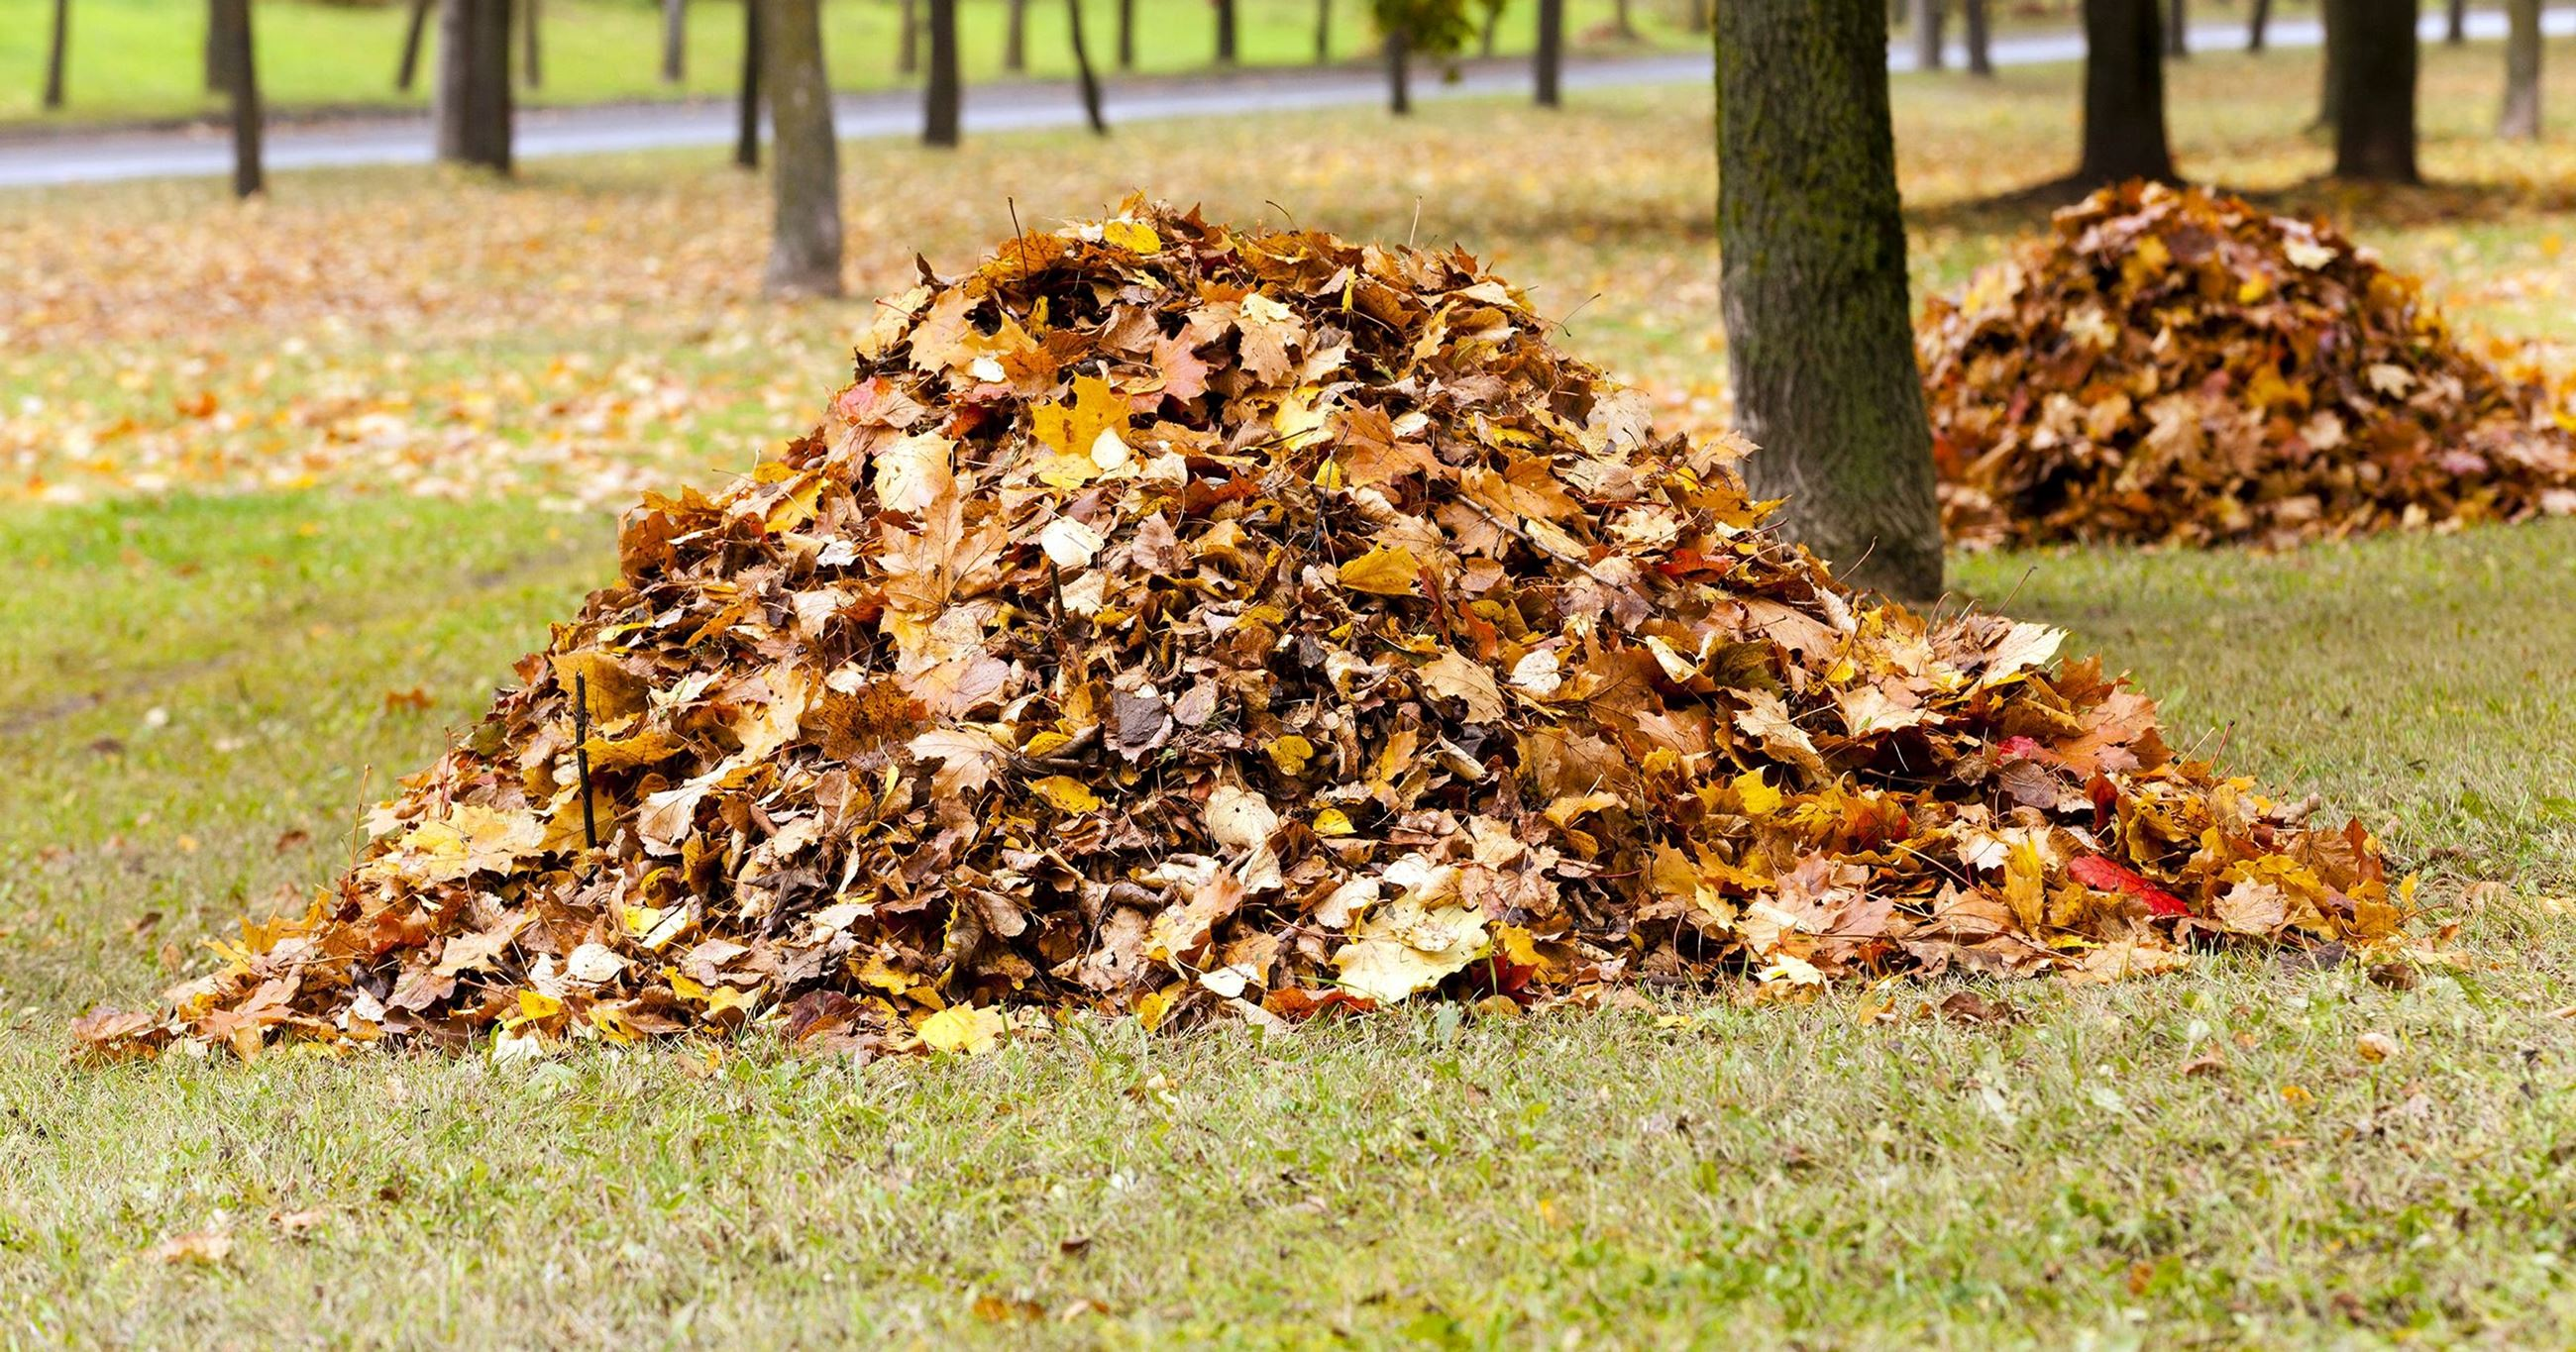 Piles of leaves in field (JPG)